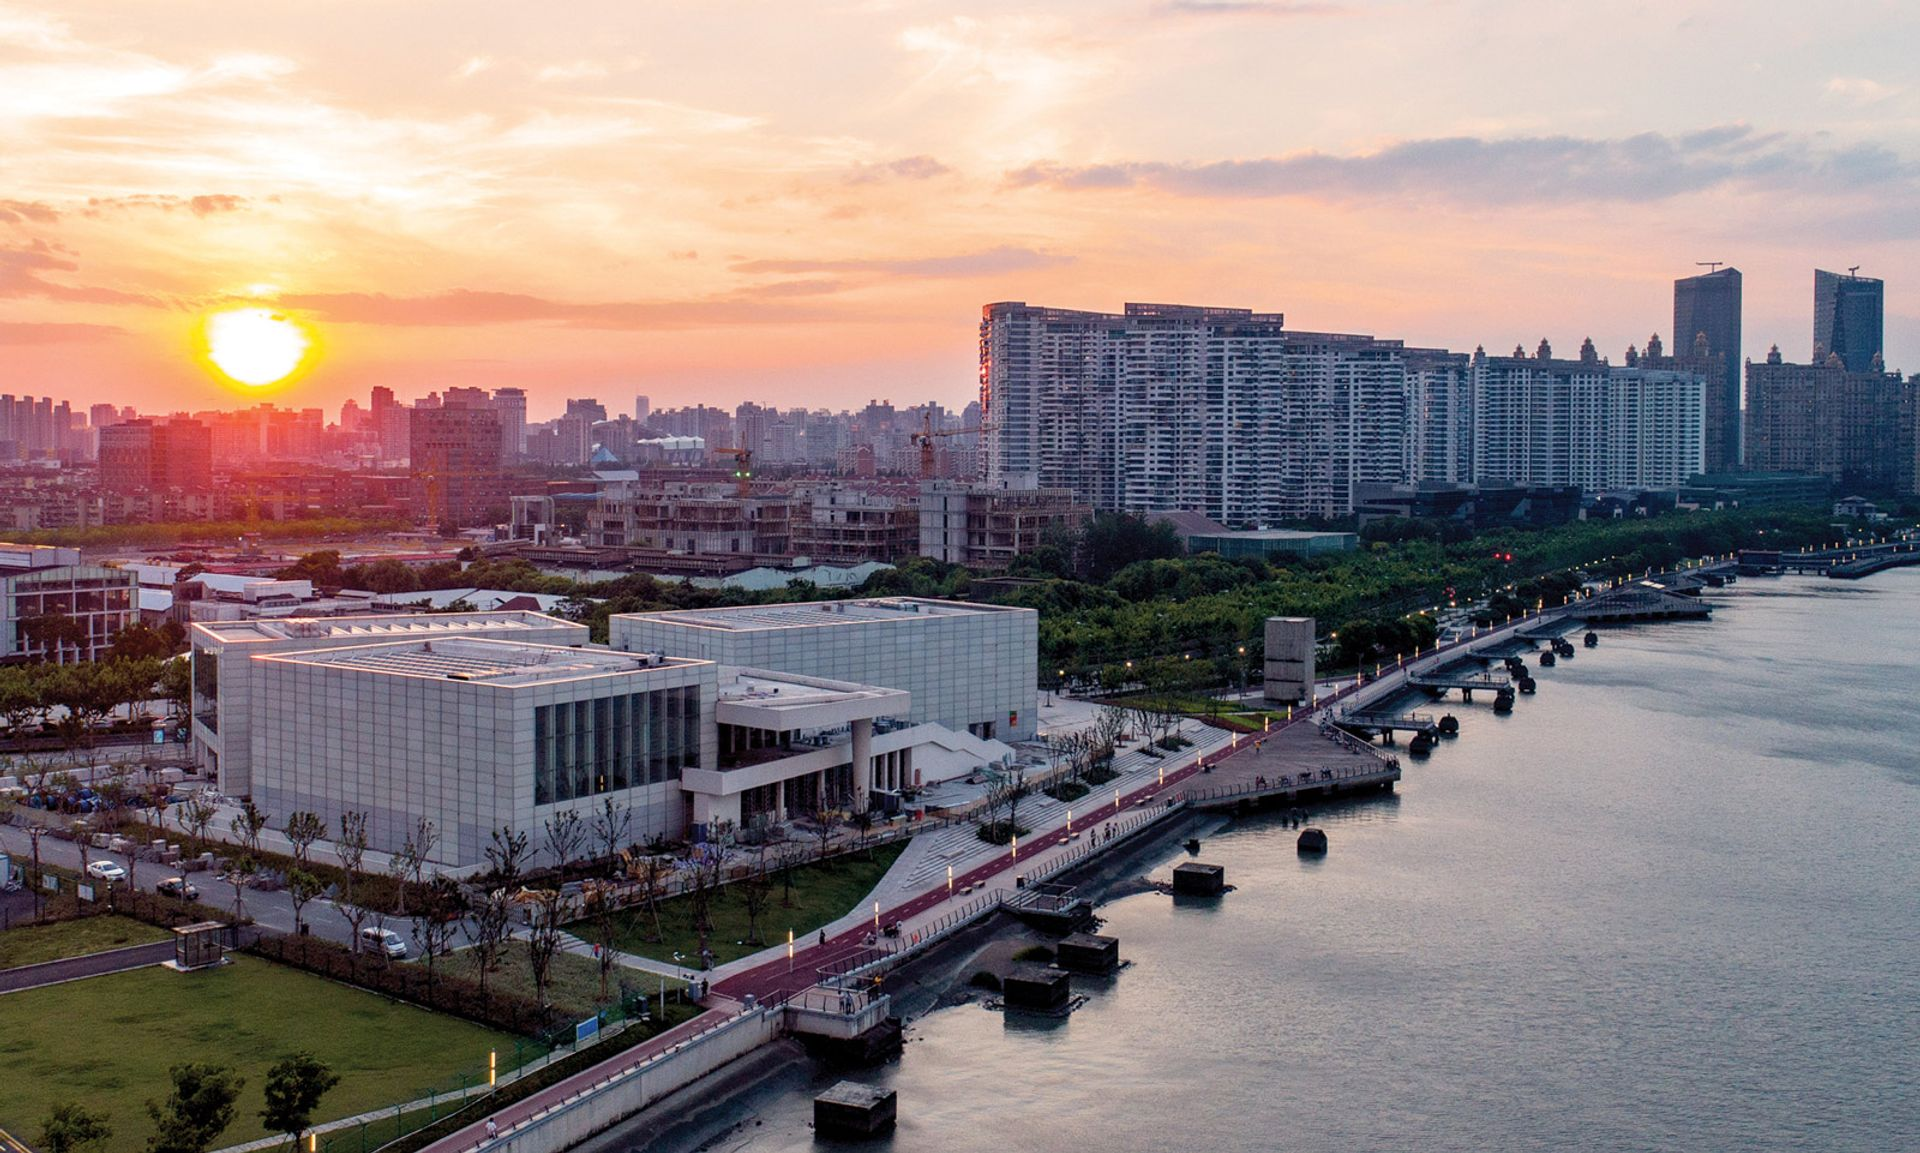 The new Centre Pompidou x West Bund Museum opened in Shanghai for an initial five-year period © Aki / West Bund Museum